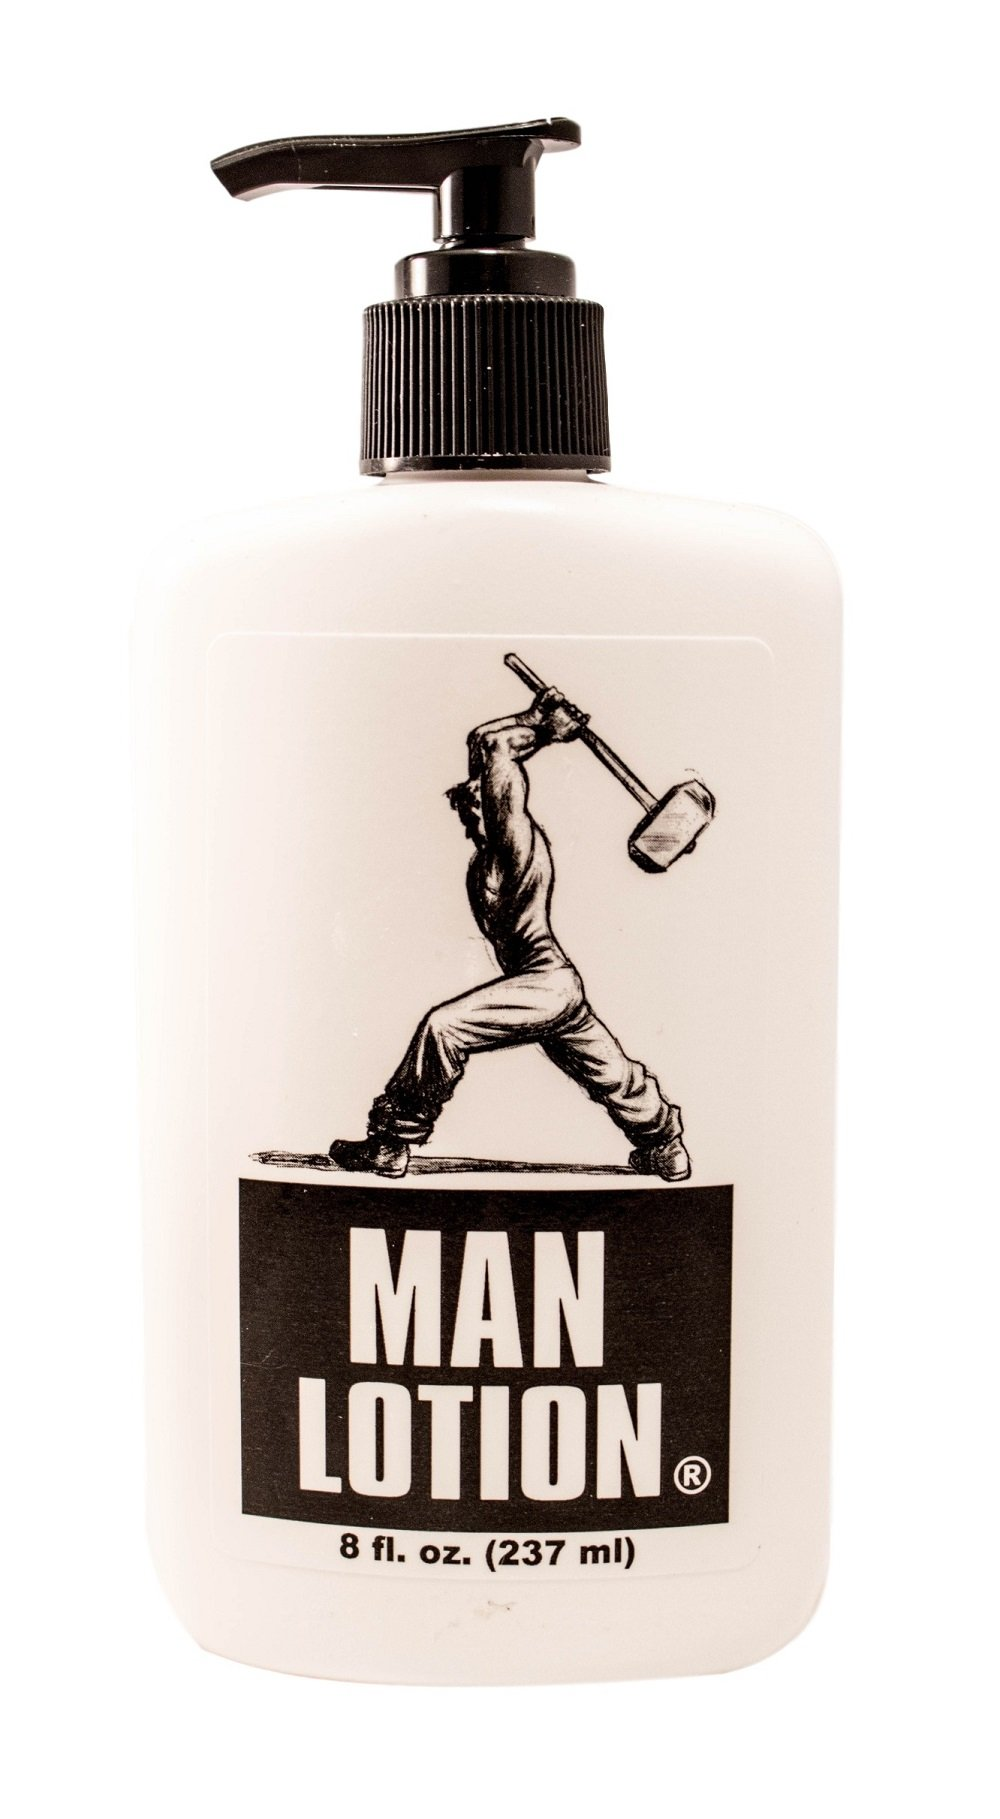 Man Lotion - Hand, Face and Body Lotion for Men- 8 fl oz(237 ml) by Man Stuff